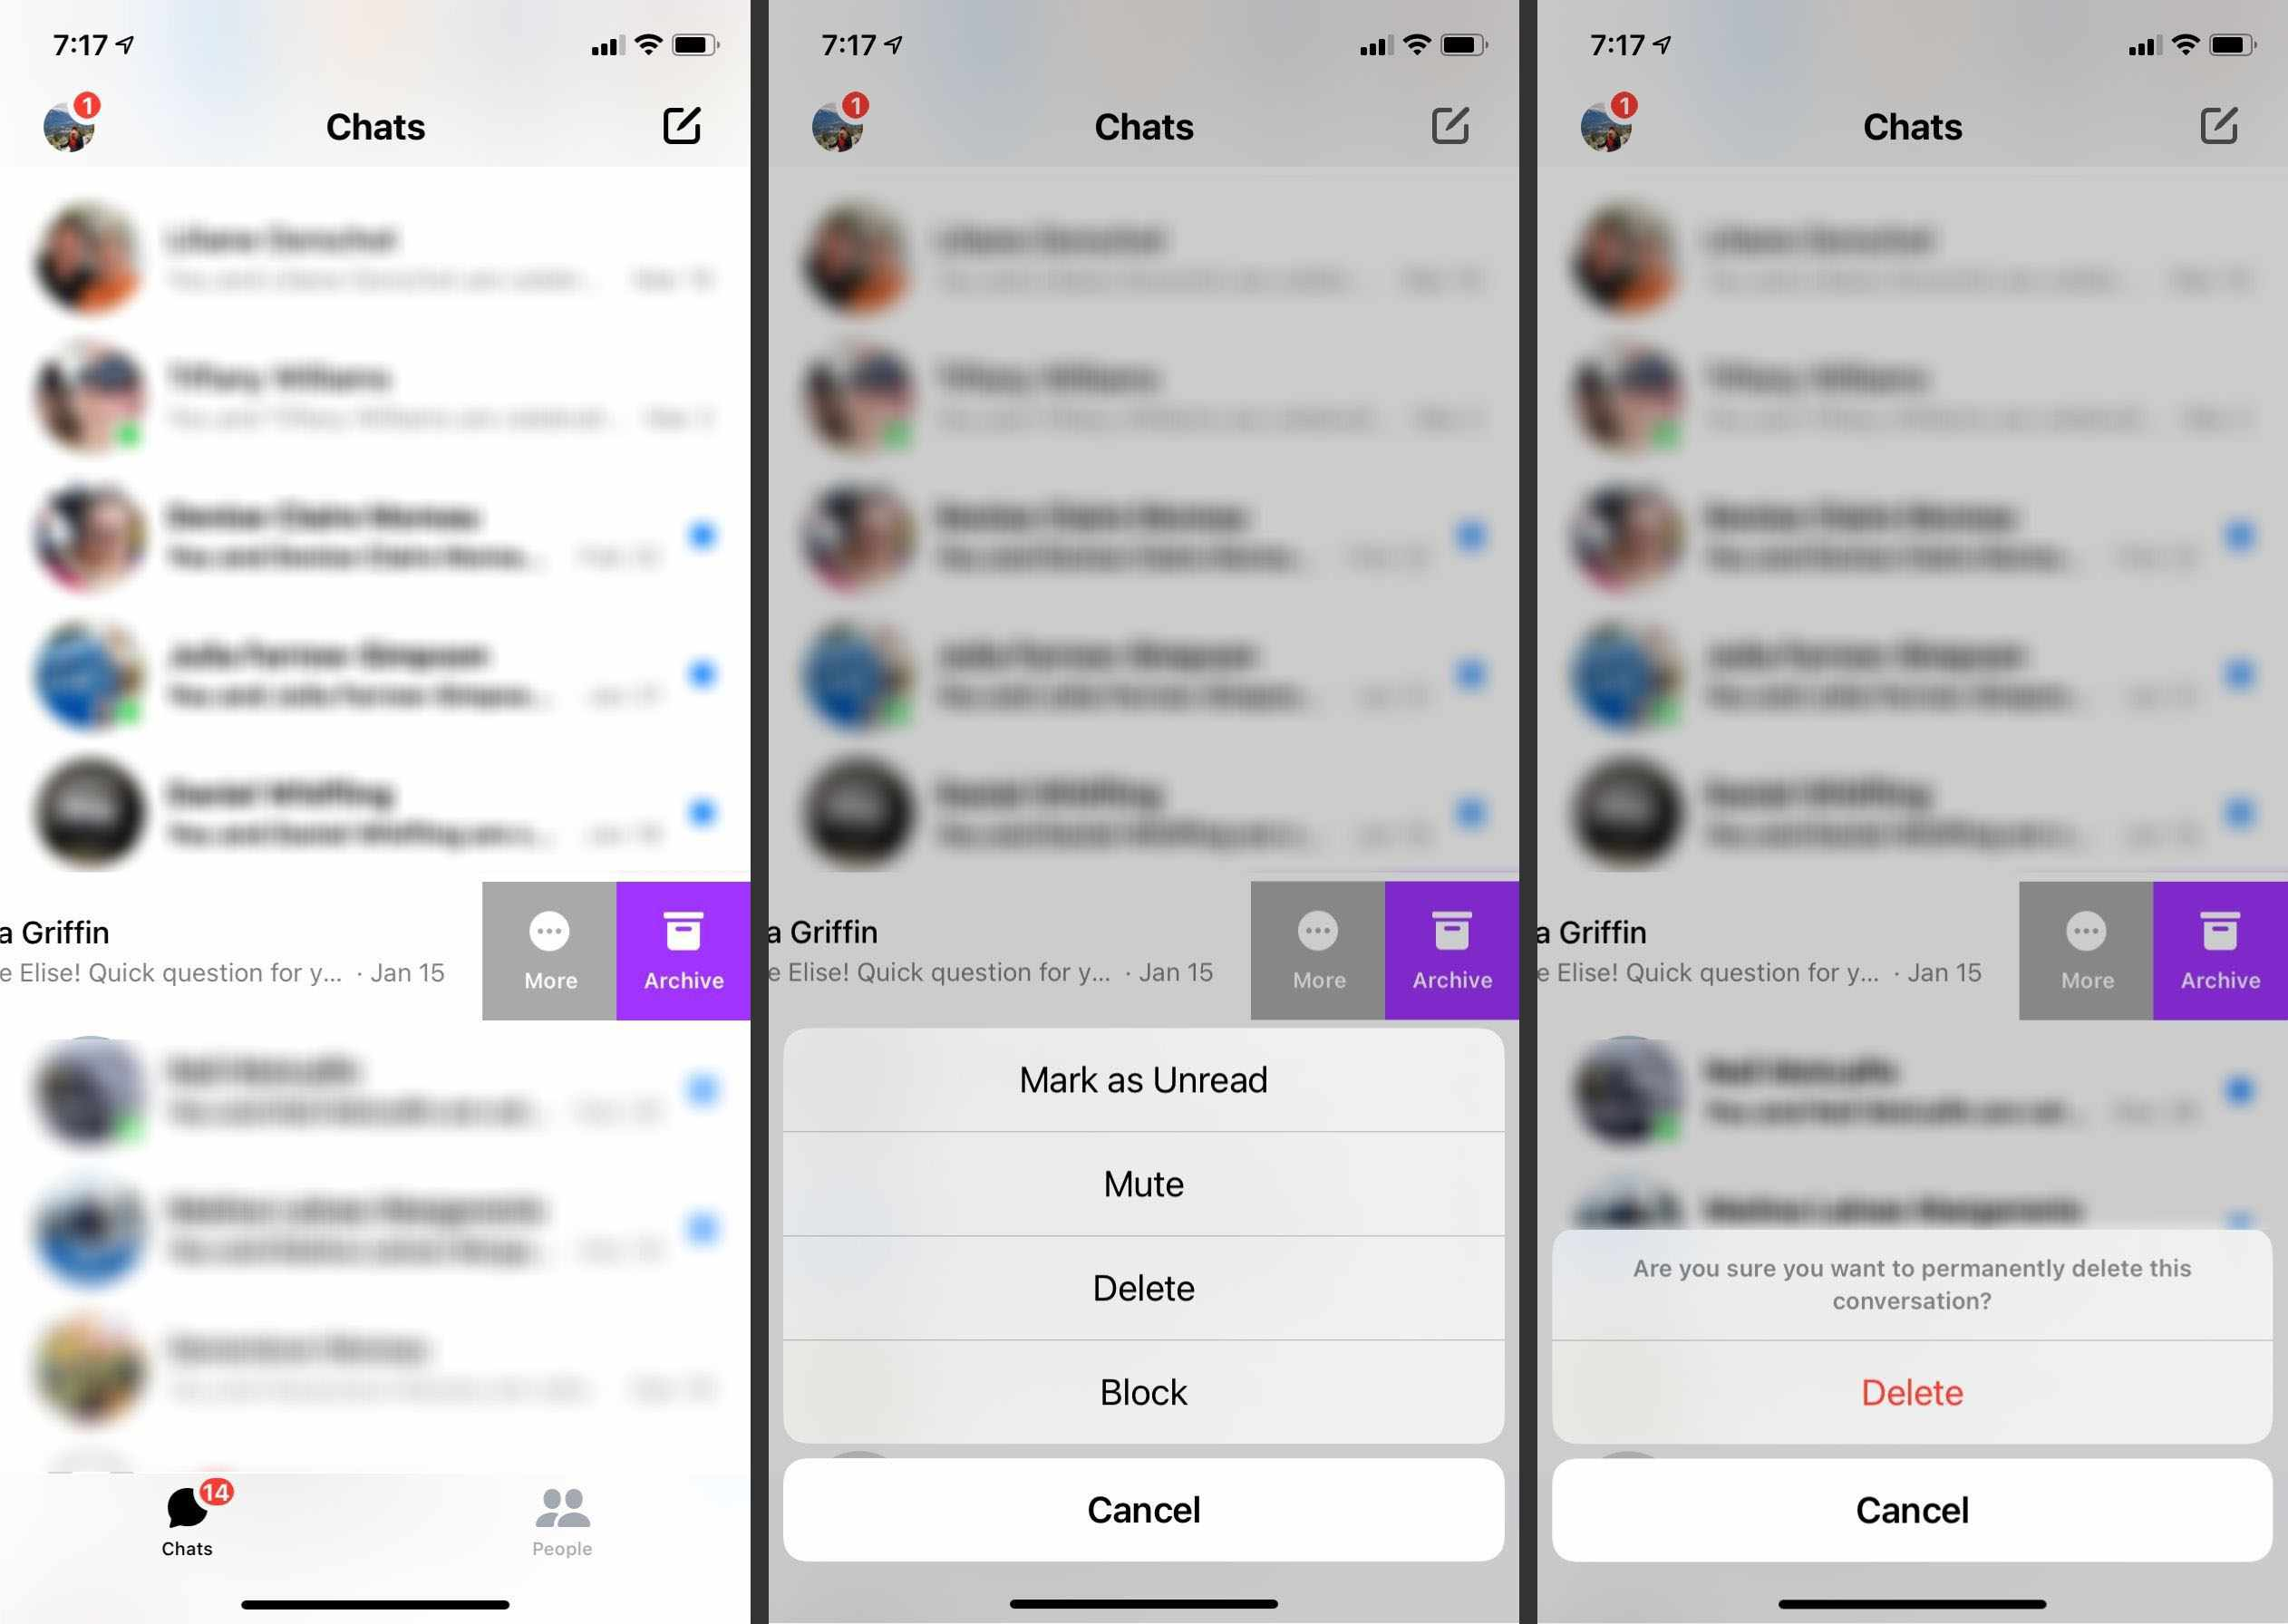 Steps to take to delete a conversation in the Facebook Messenger app.